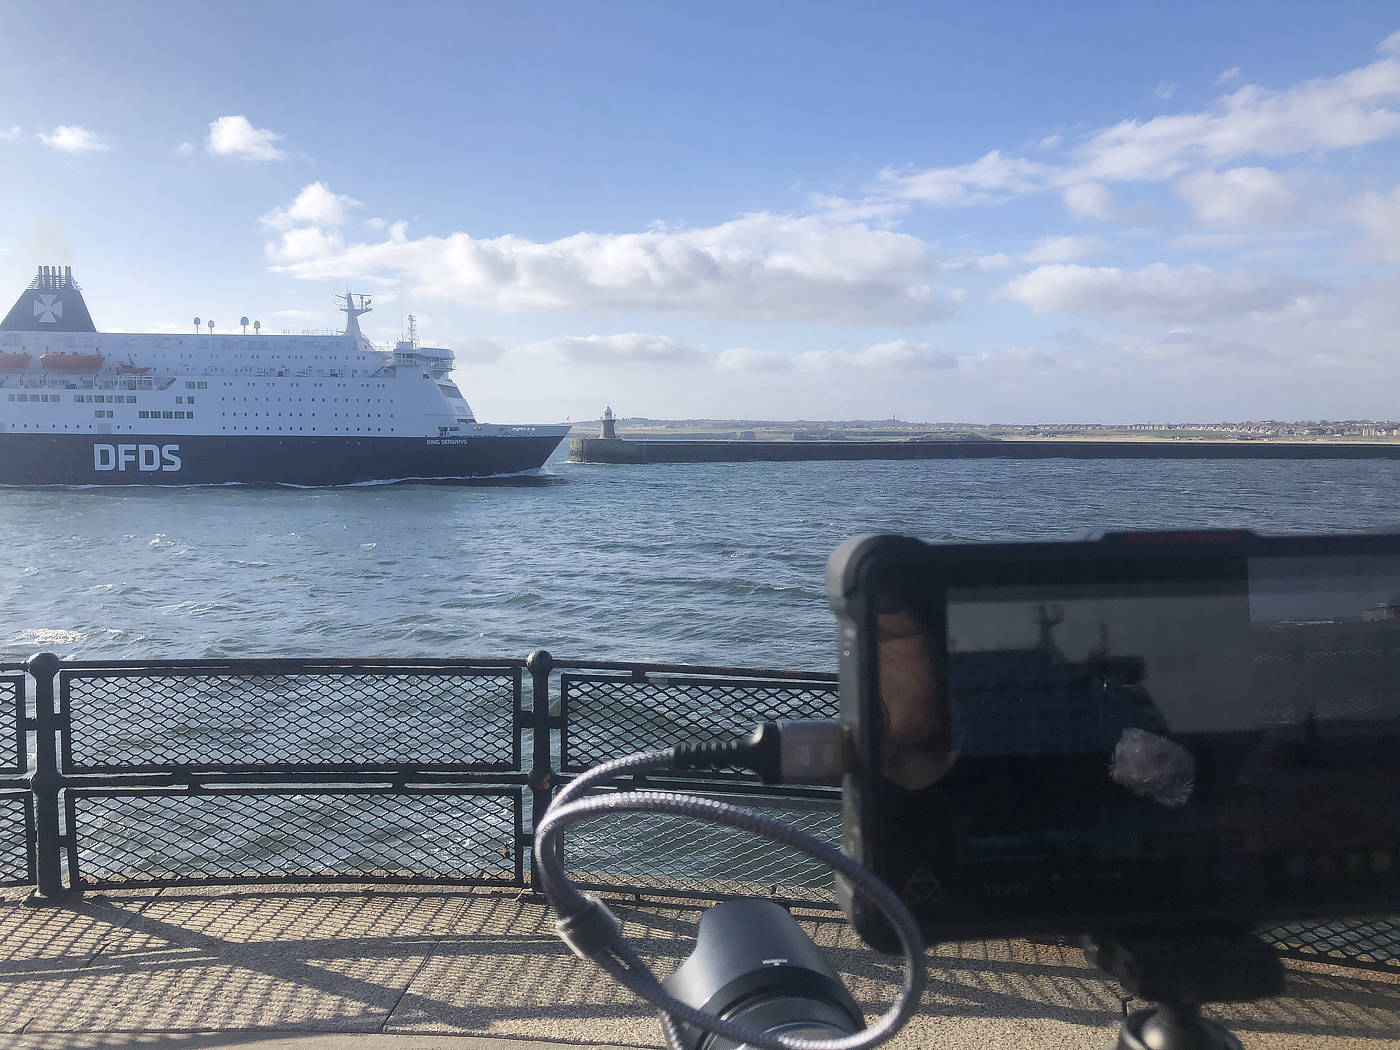 Filming the DFDS Amsterdam Ferry entering the mouth of the River Tyne